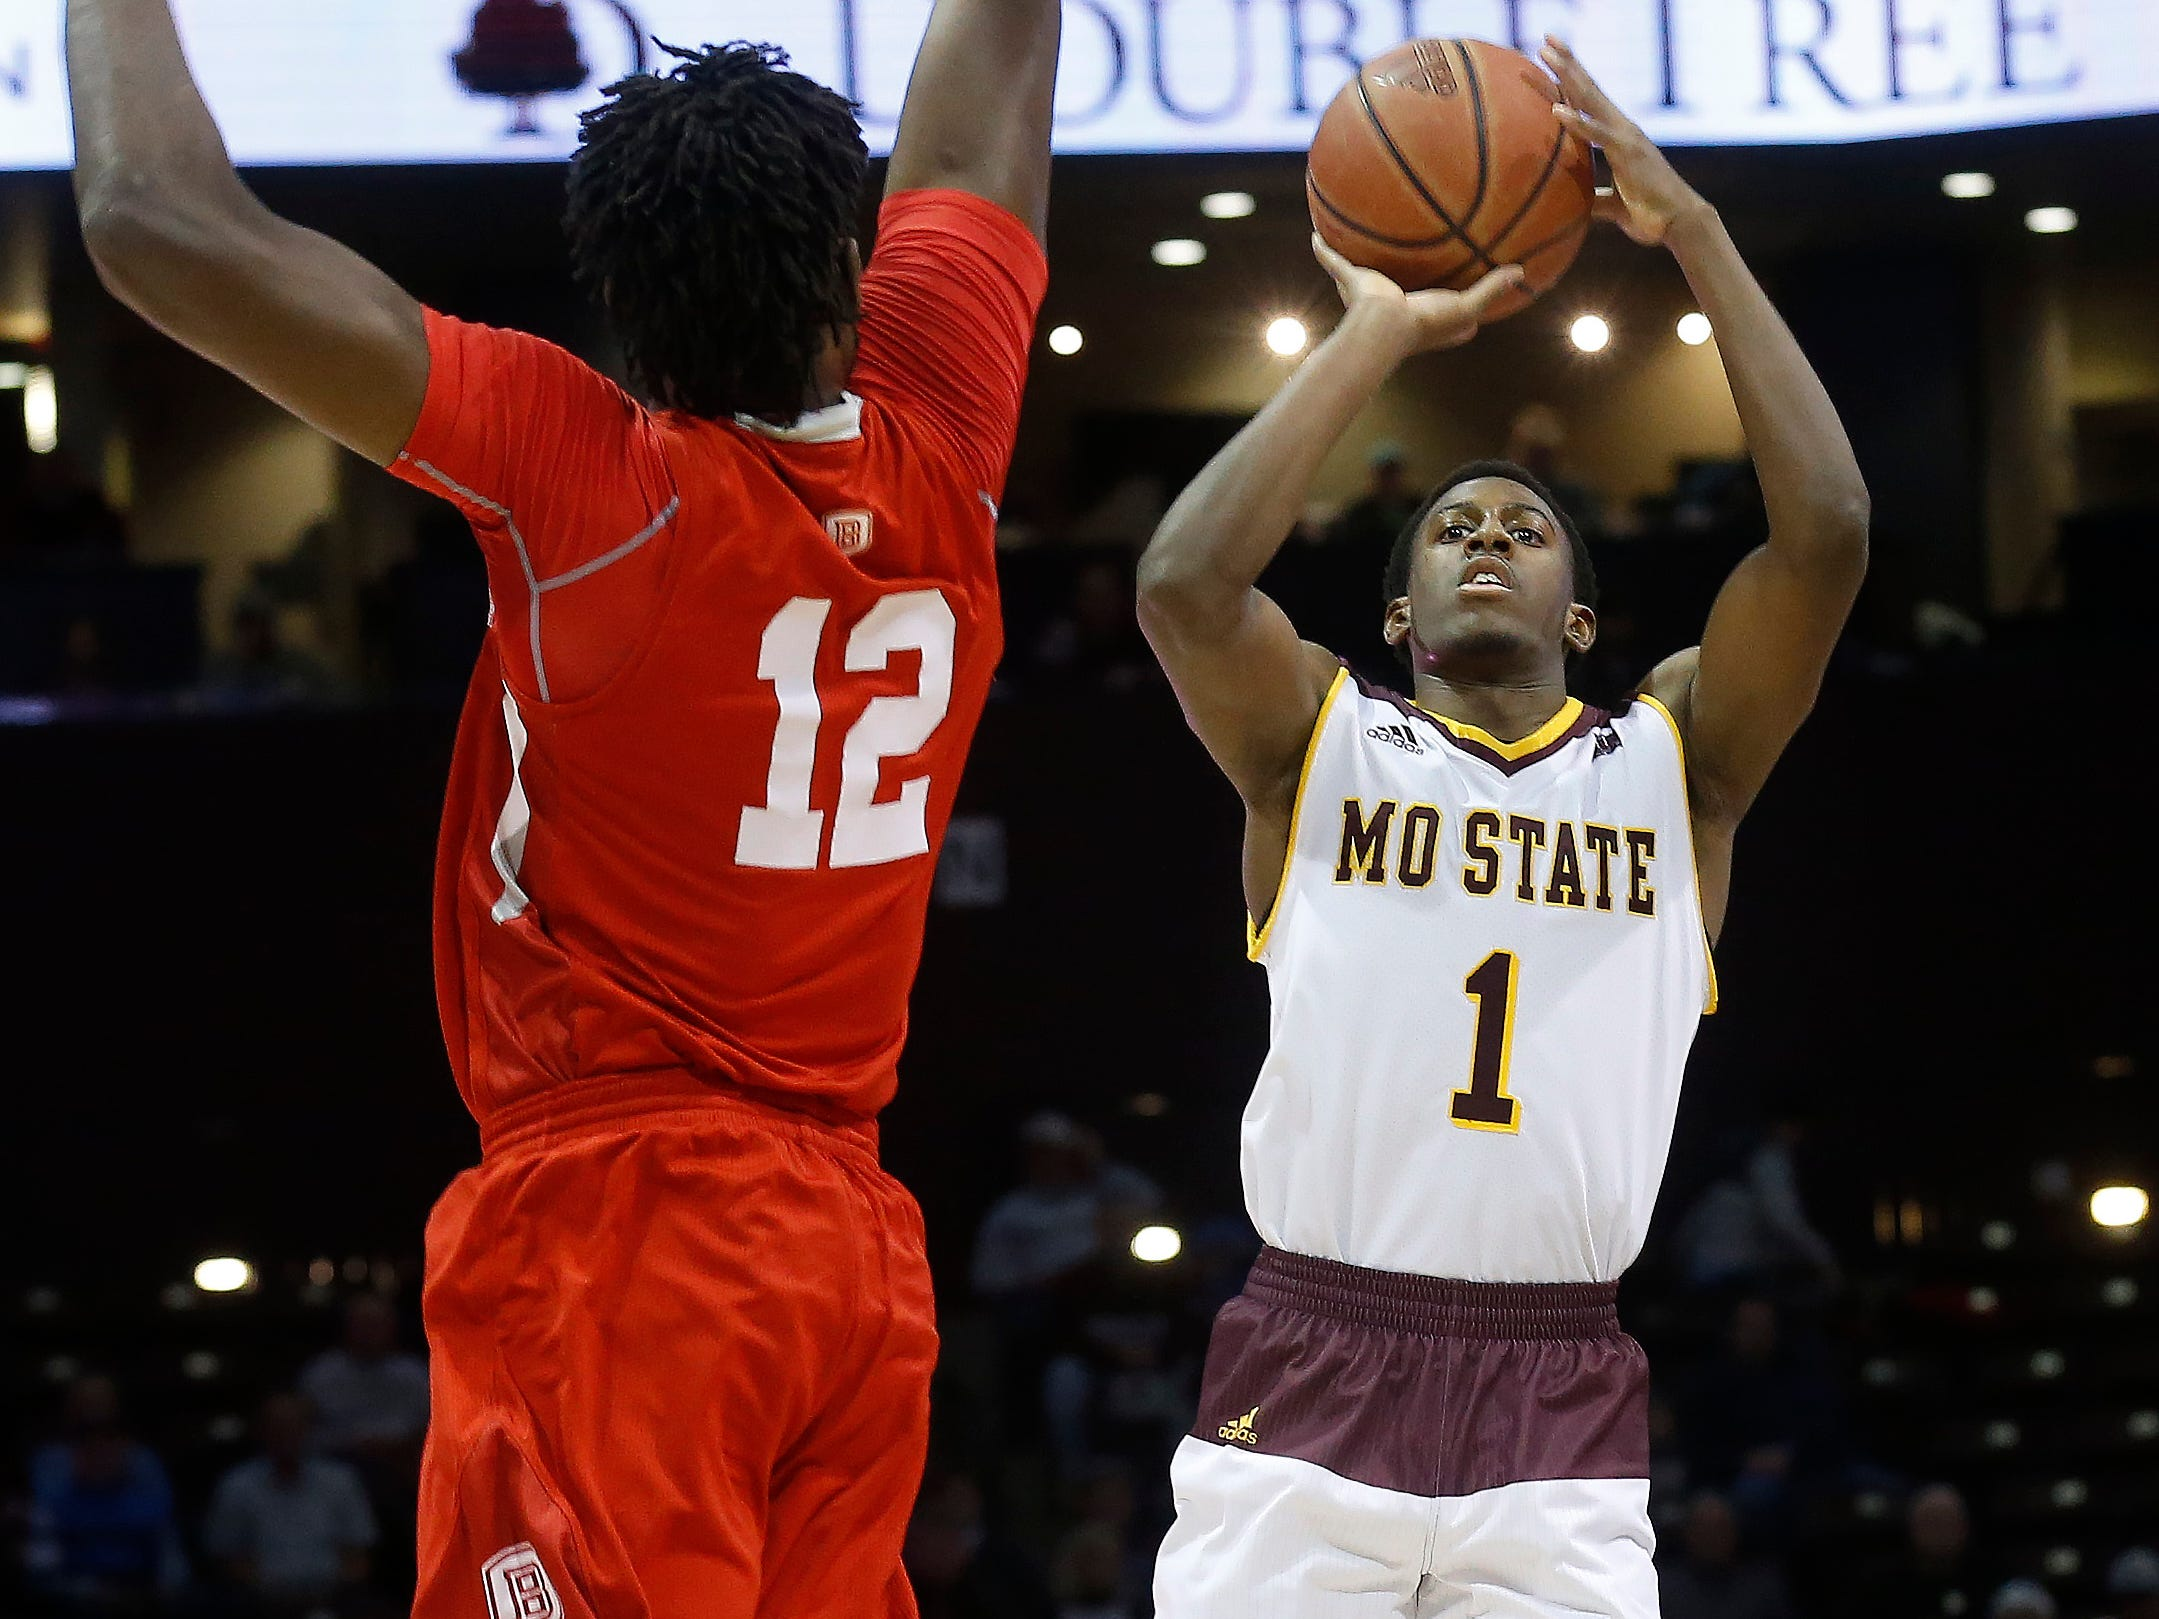 Scenes from the Missouri State Bears game against Bradley at JQH Arena on Saturday, Jan. 26, 2019.